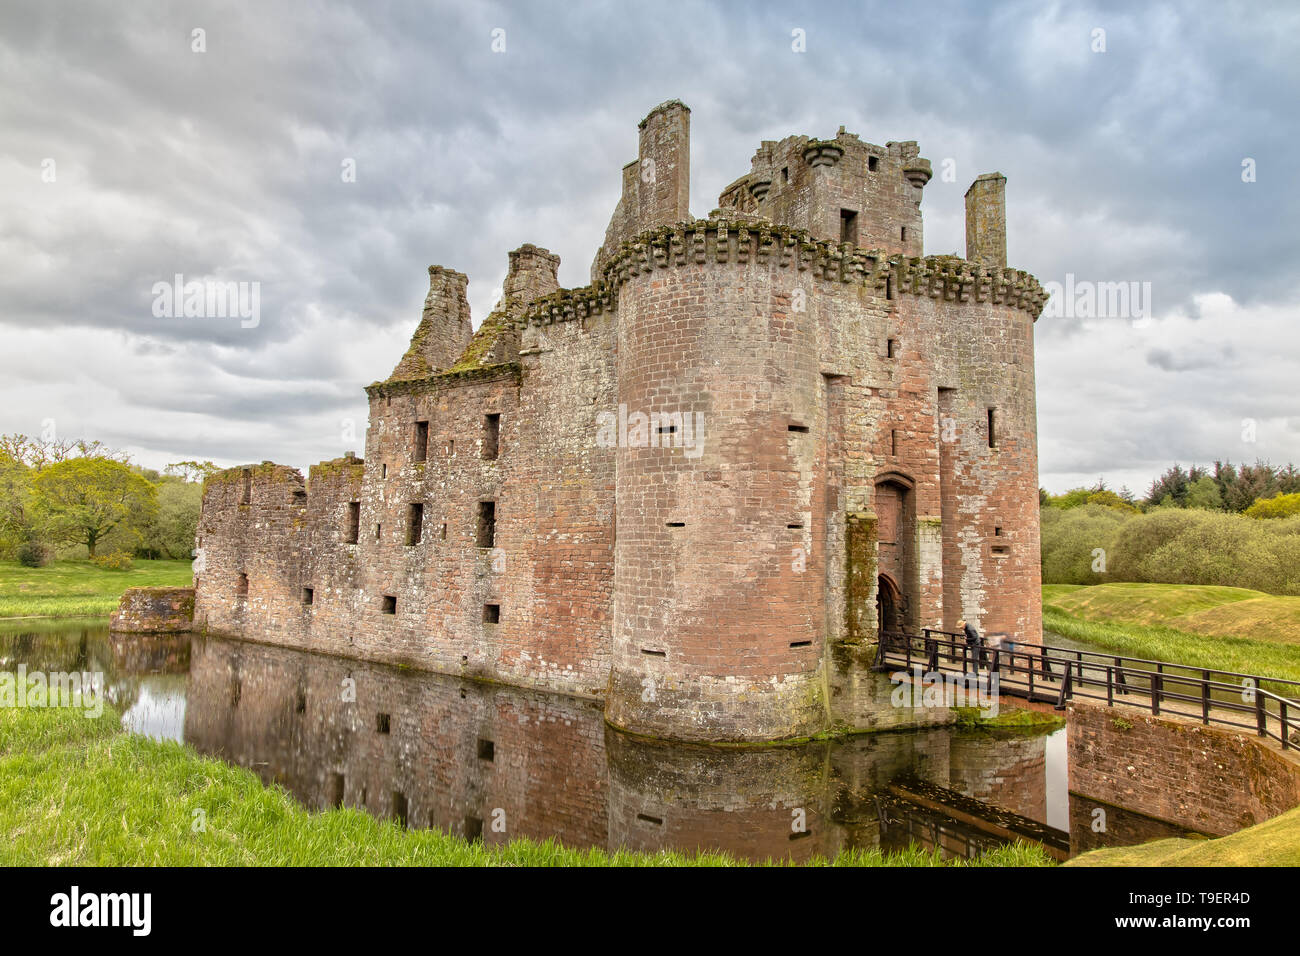 Caerlaverock Castle in Dumfries and Galloway Council Area in Scotland - Stock Image